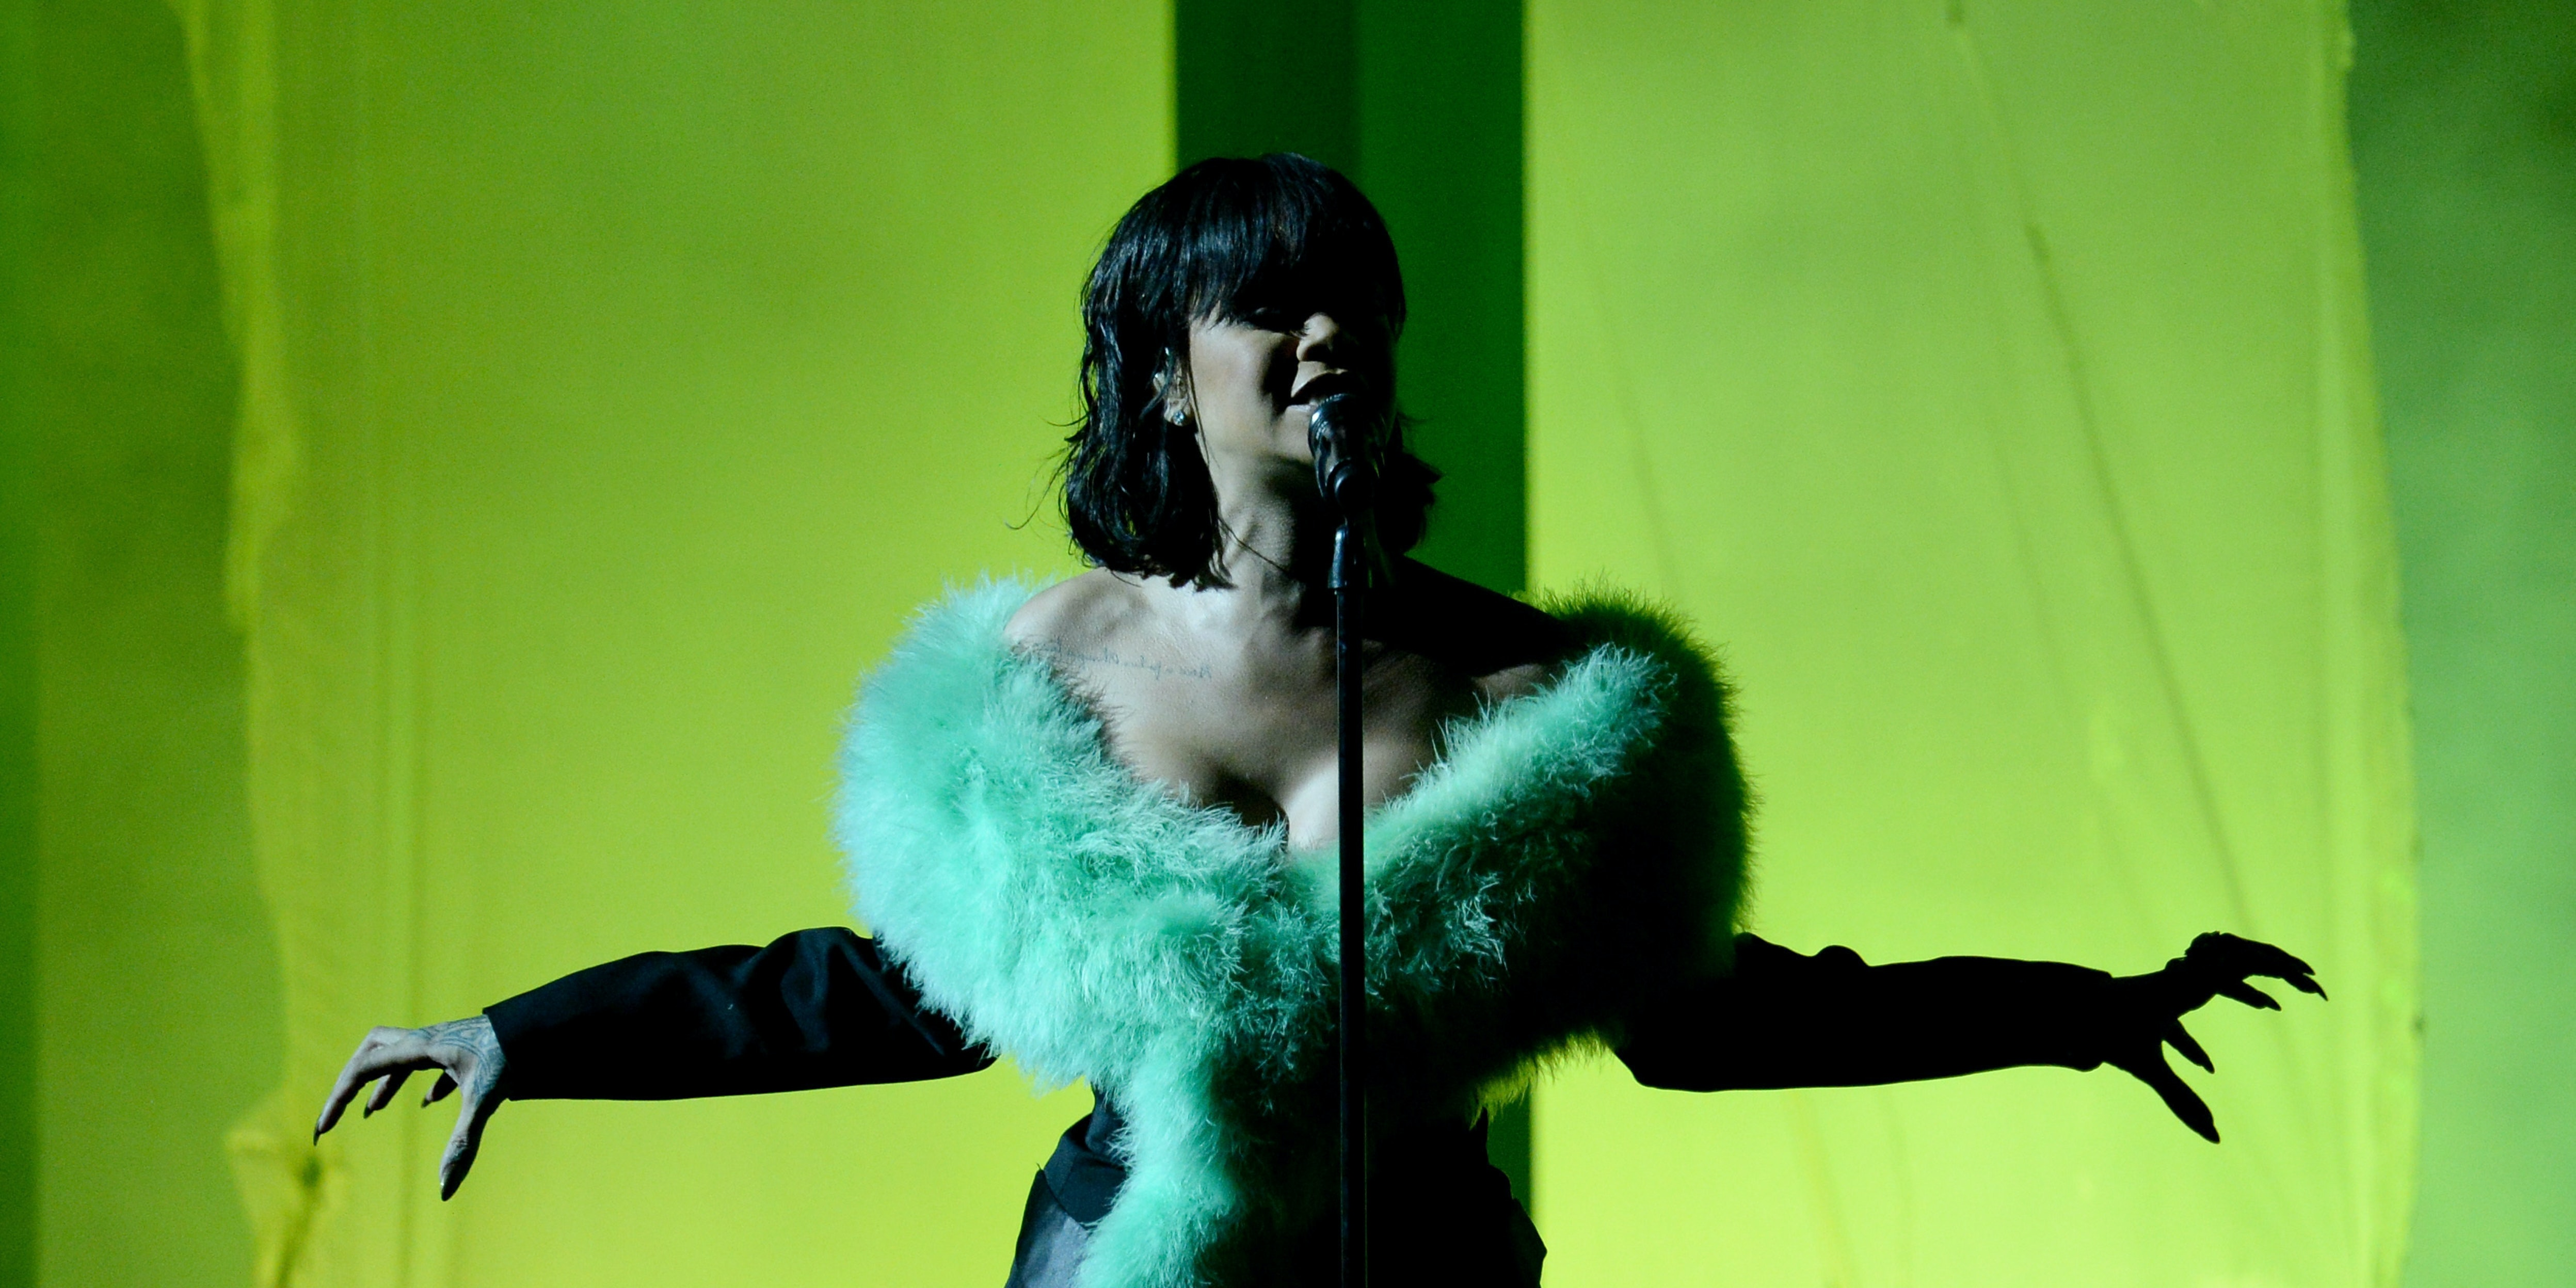 LAS VEGAS, NV - MAY 22:  Recording artist Rihanna performs onstage during the 2016 Billboard Music Awards at T-Mobile Arena on May 22, 2016 in Las Vegas, Nevada.  (Photo by Kevin Winter/Getty Images)